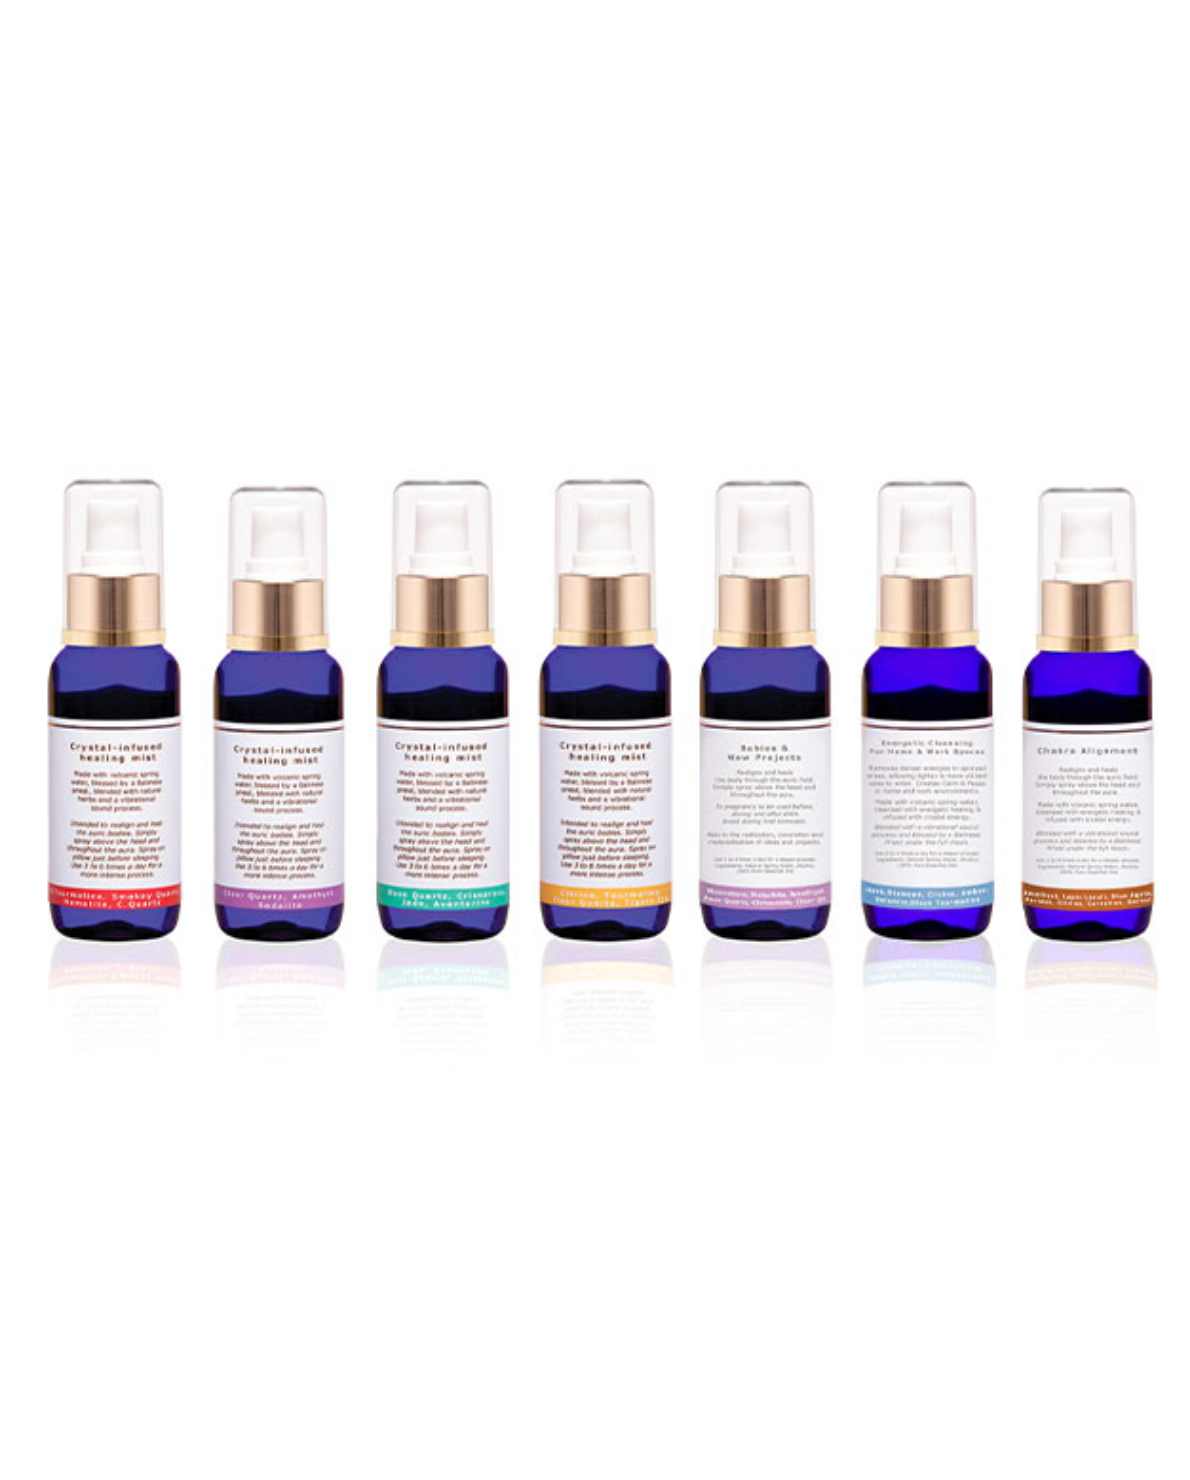 AURA SPRAY - Abundance collection